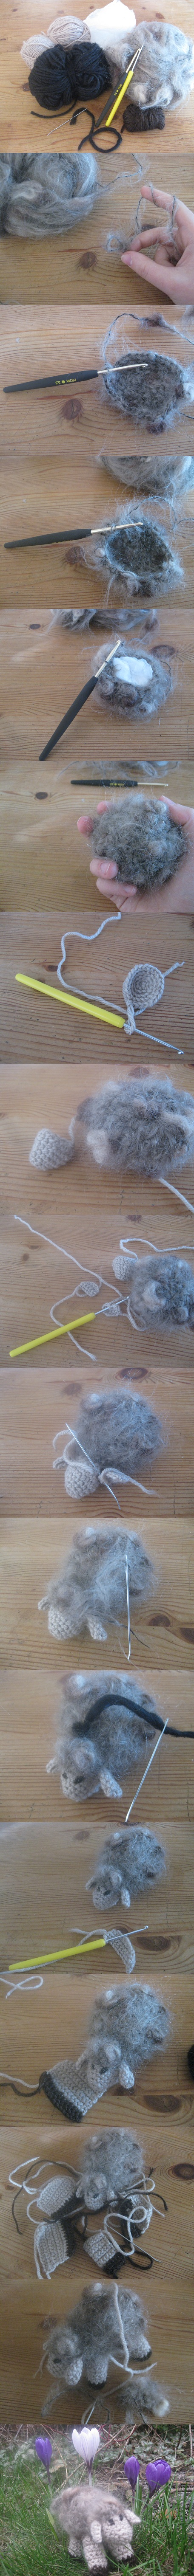 Tutorial Crochet Sheep by Twinsmanns